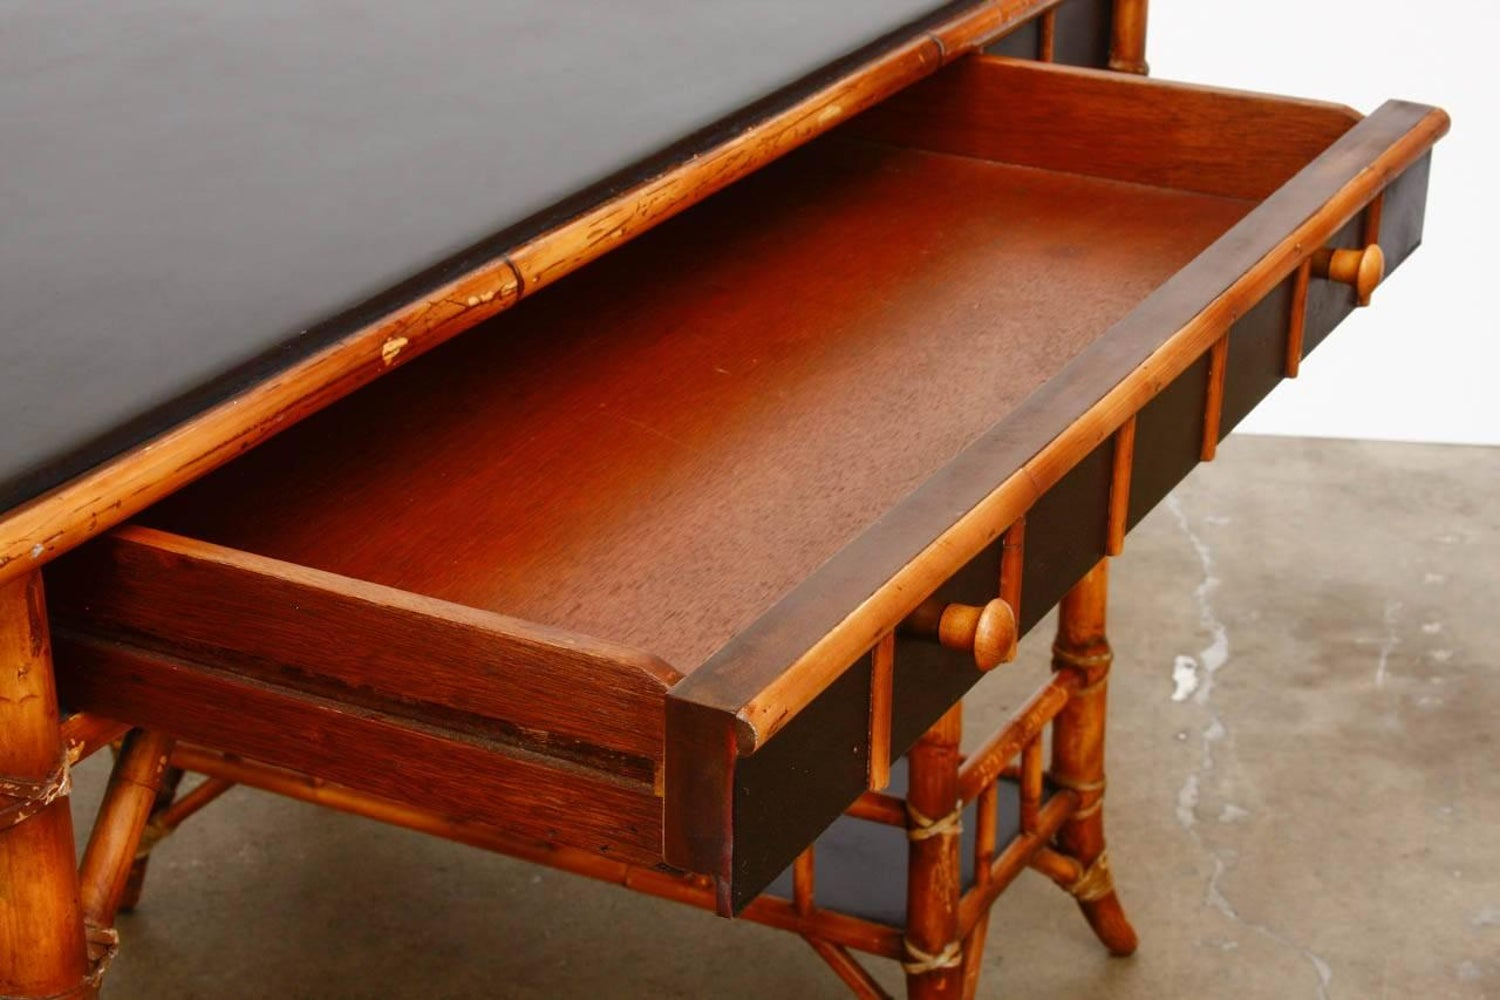 English Chinoiserie Style Bamboo Desk By Milling Road For Baker At 1stdibs